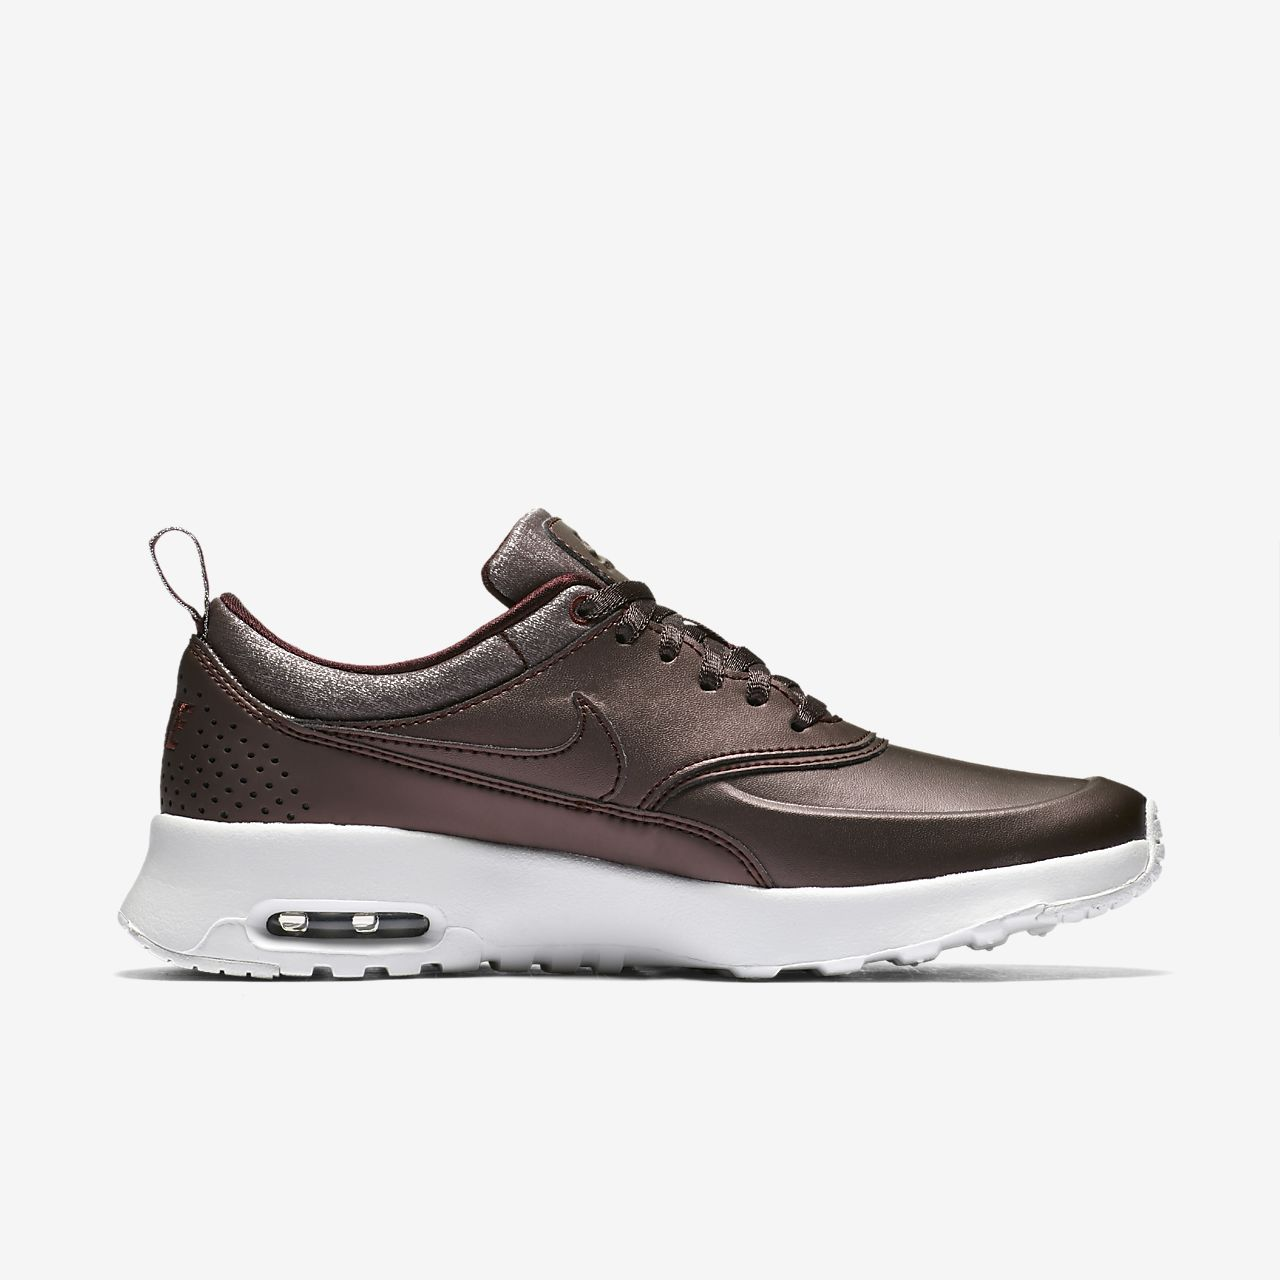 nike women's air max thea shoe nz